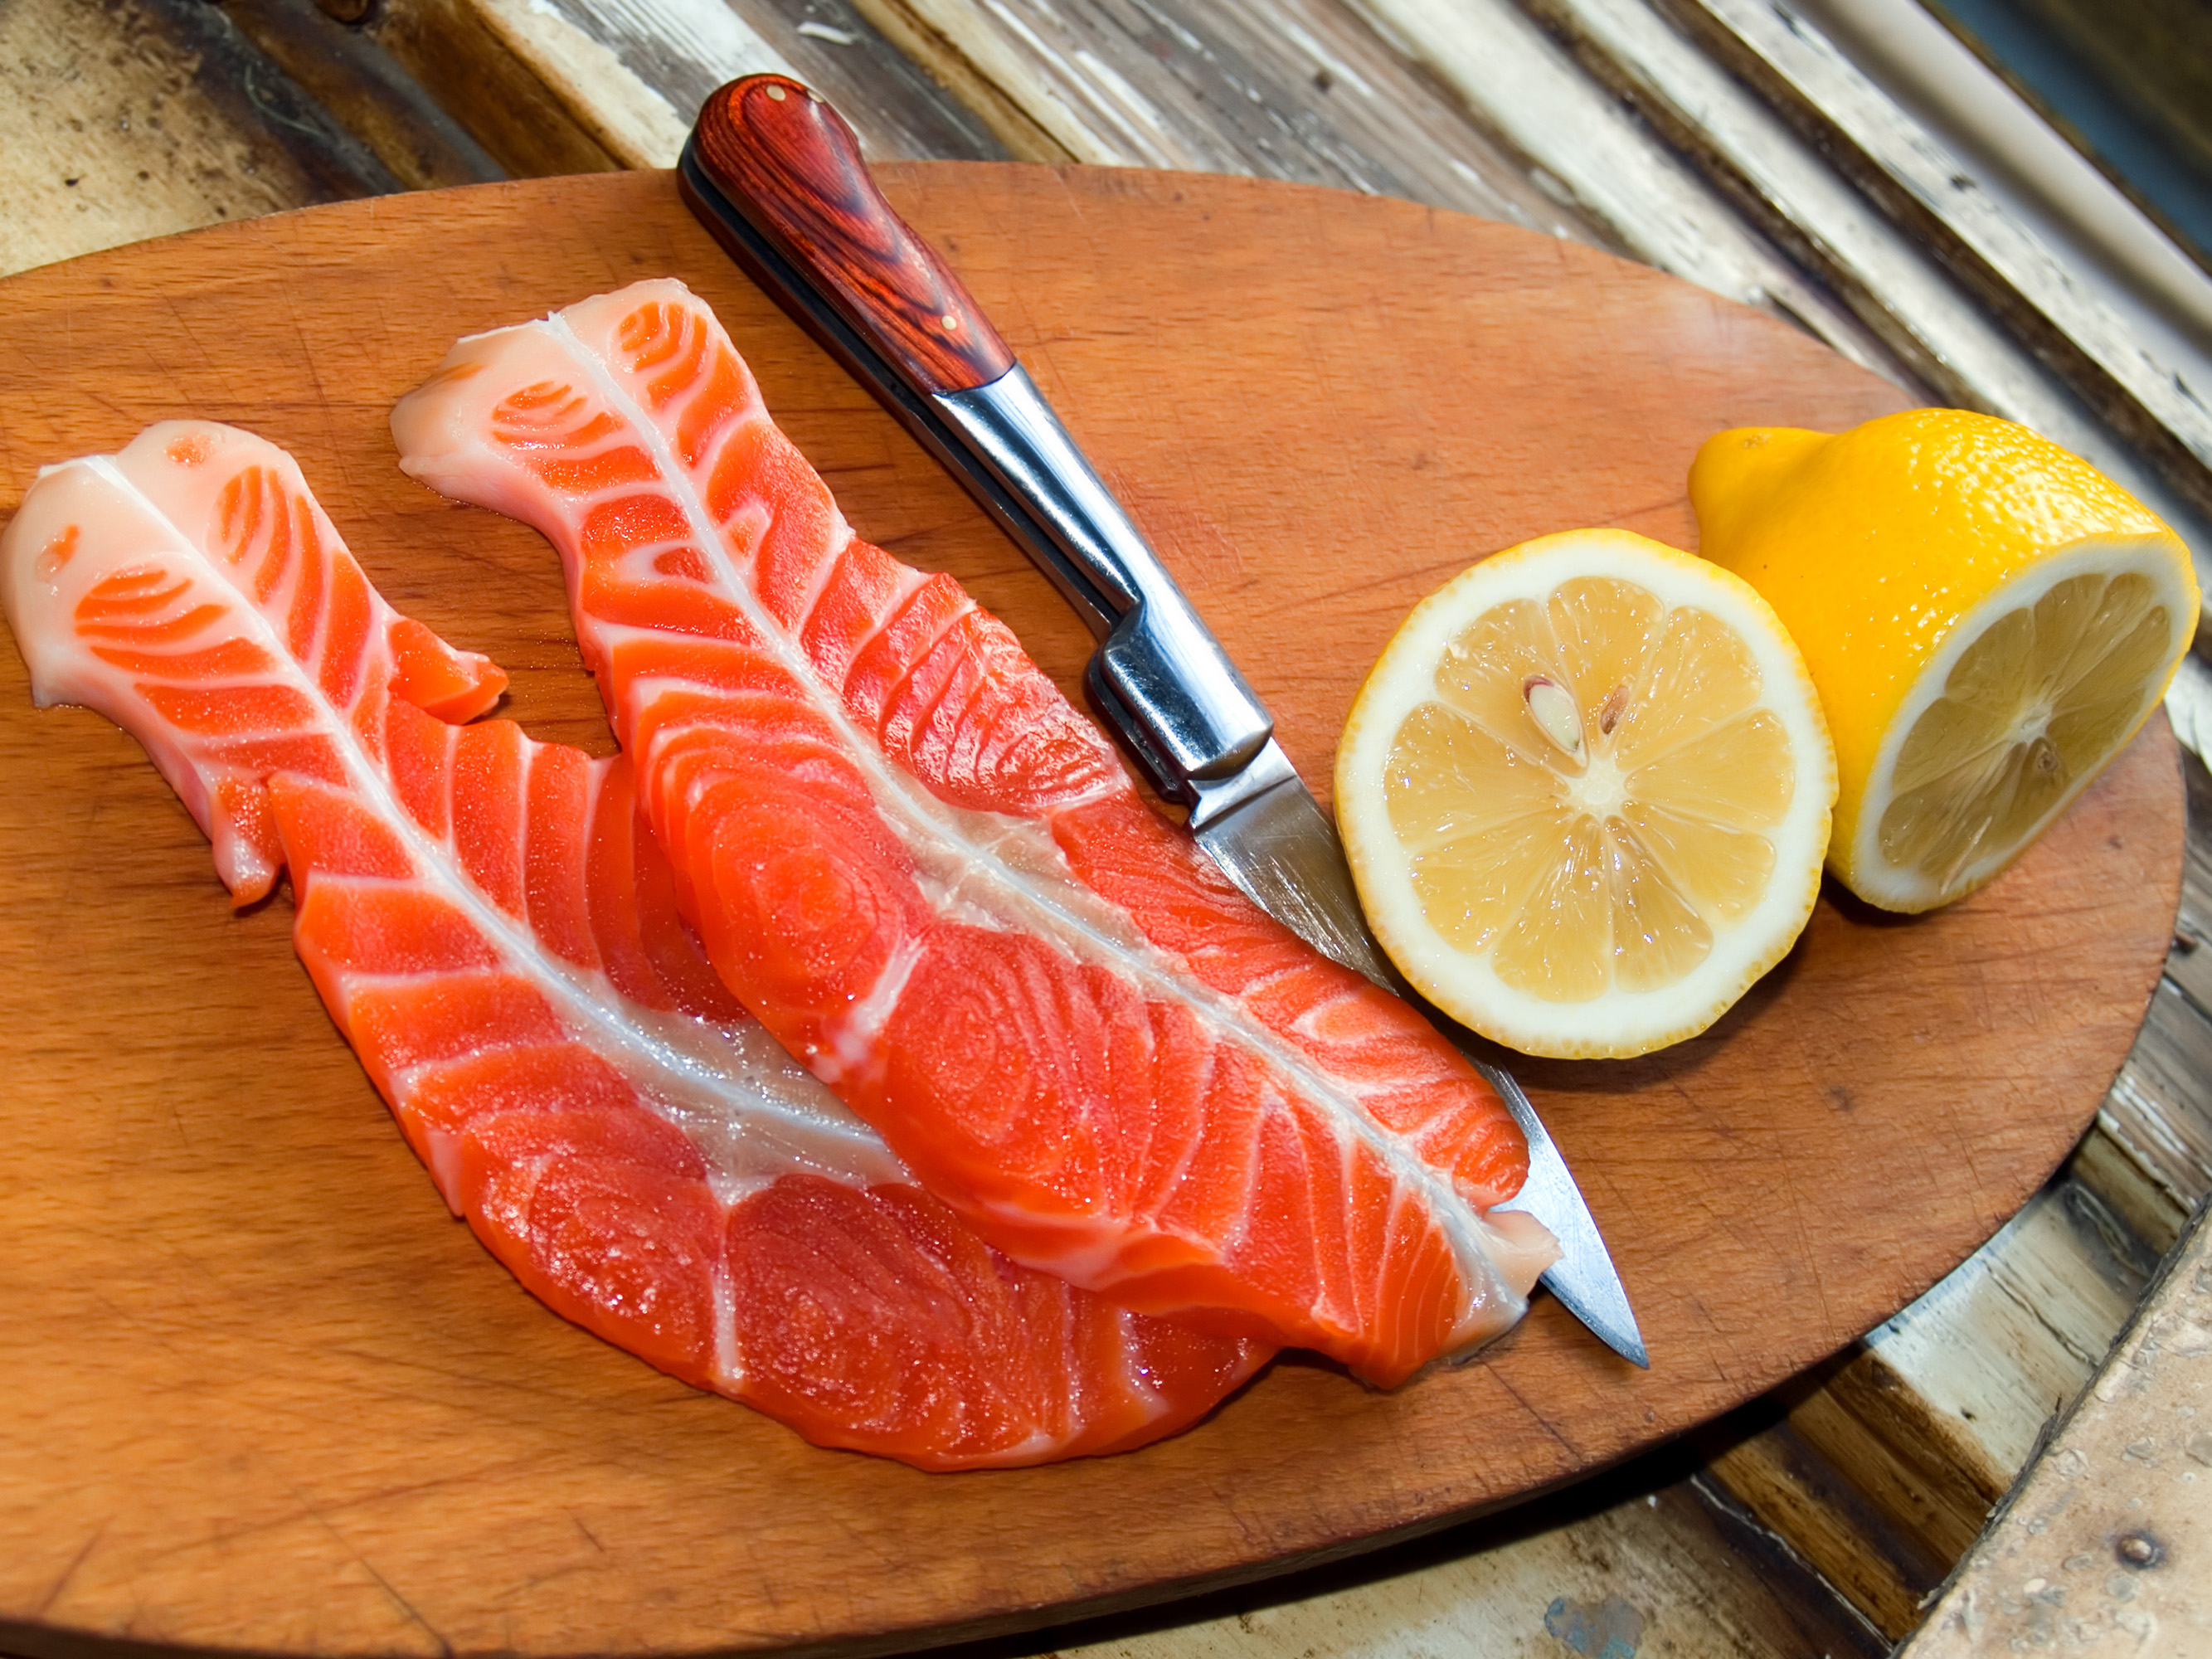 Salmon contain omega-3 fatty acid health benefits that grow telomeres.